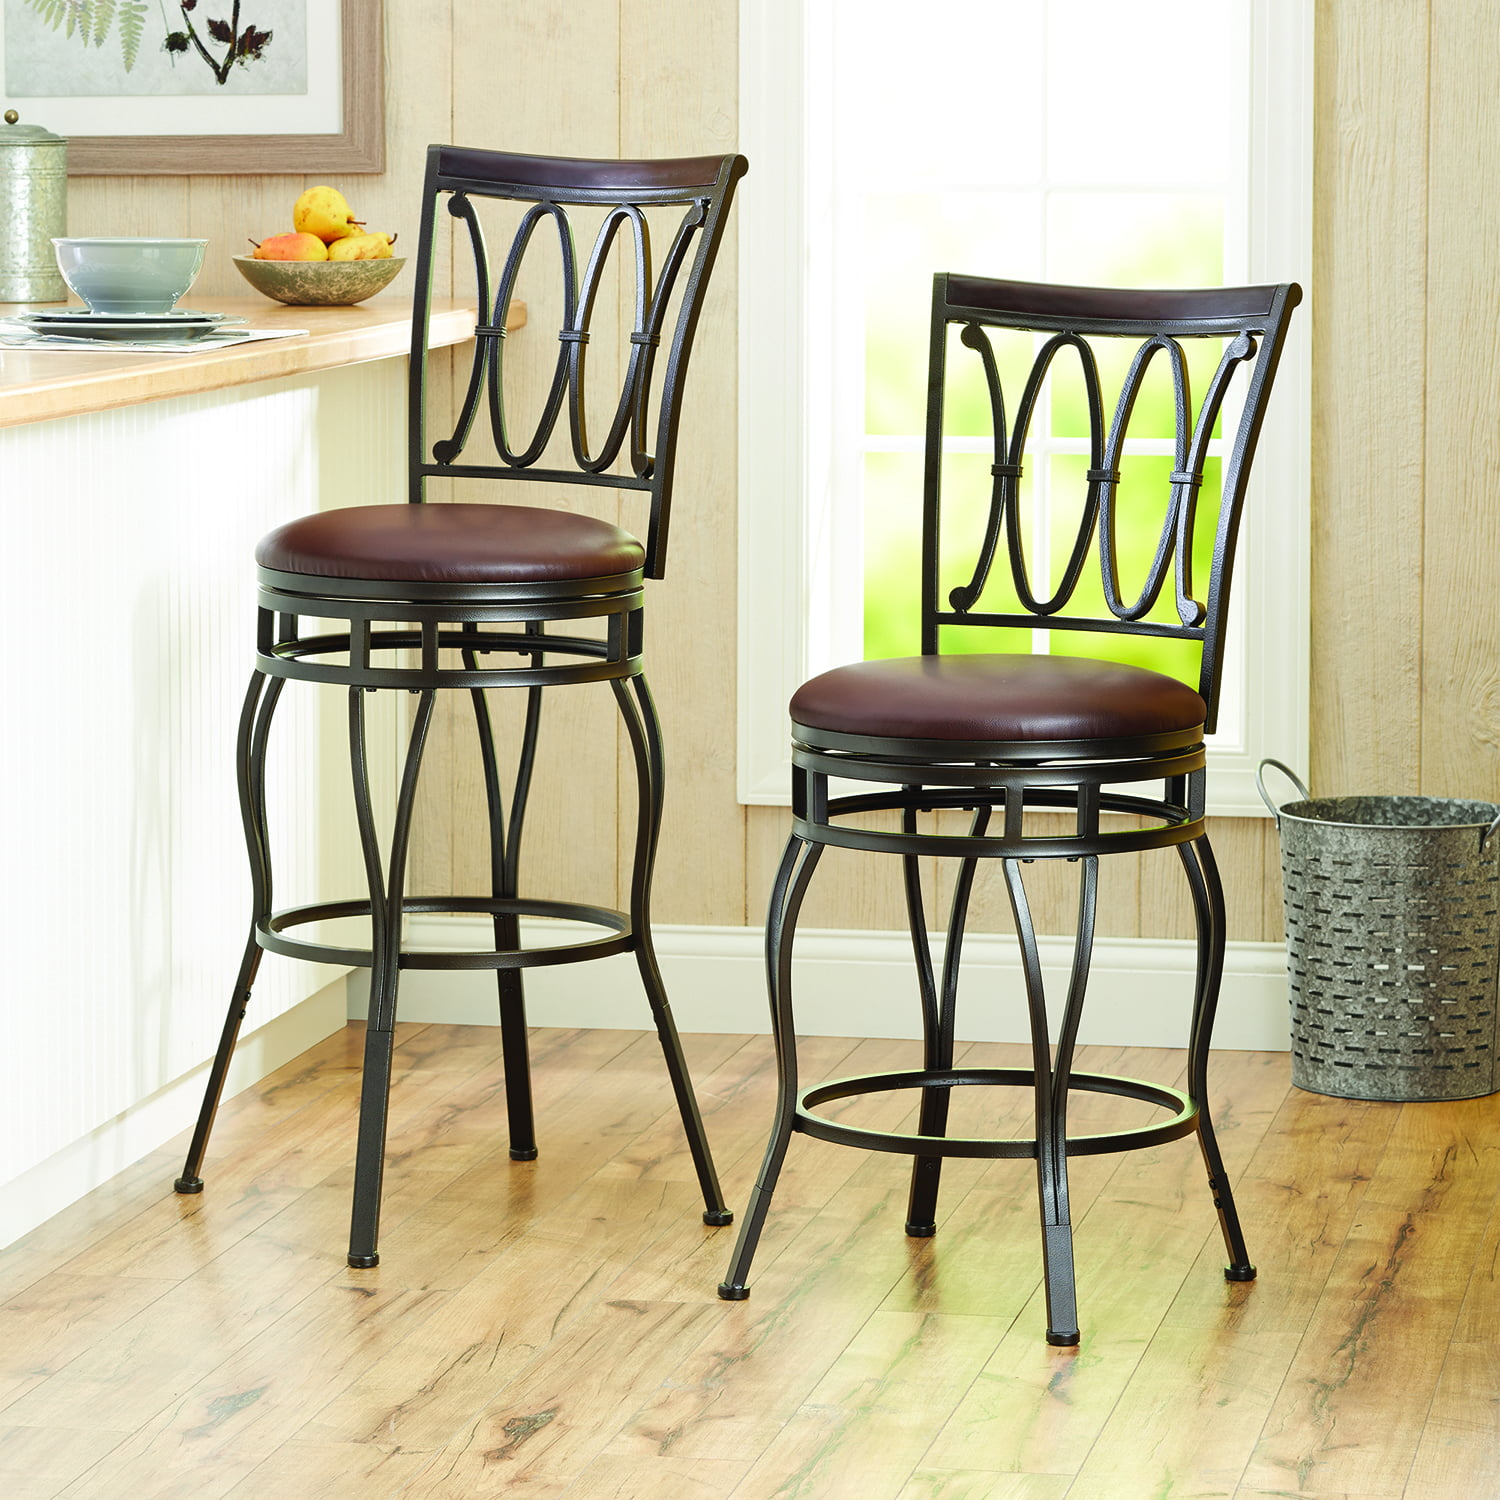 Merveilleux Better Homes And Gardens Adjustable Barstool, Oil Rubbed Bronze